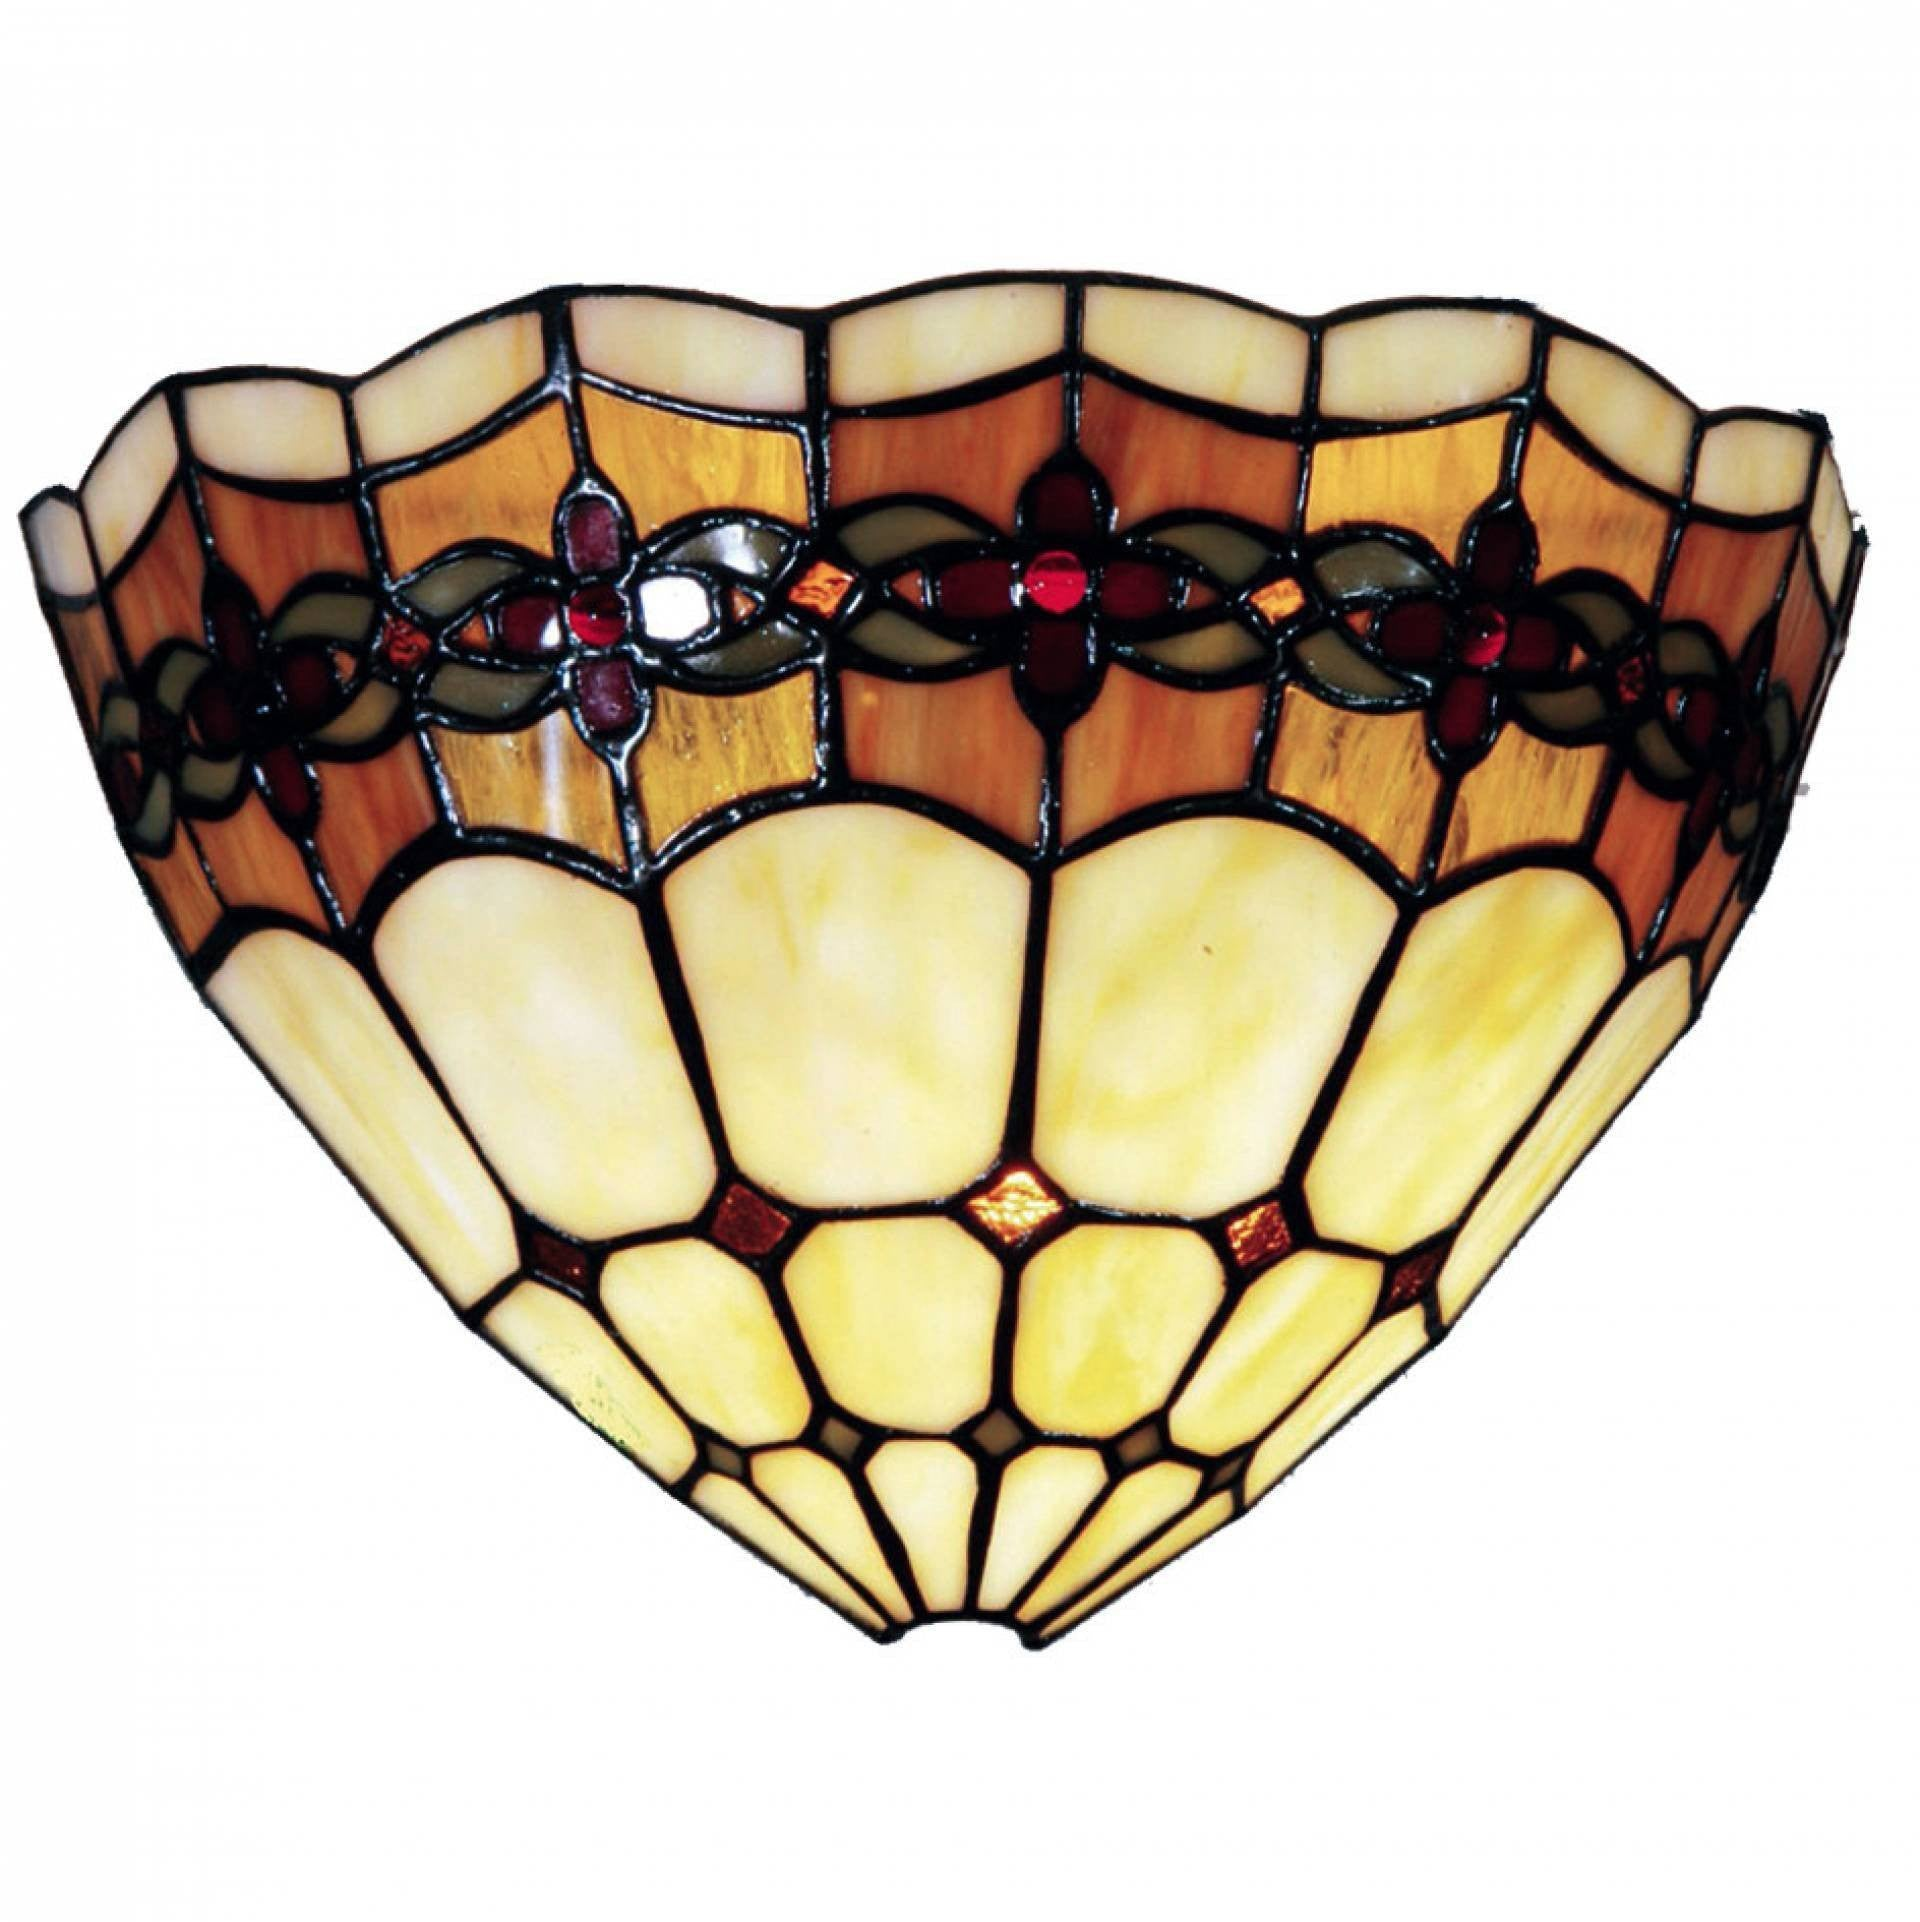 Tiffany Wall Lights - Atlantic Wall Light 5ll-9884 by TIffany ...